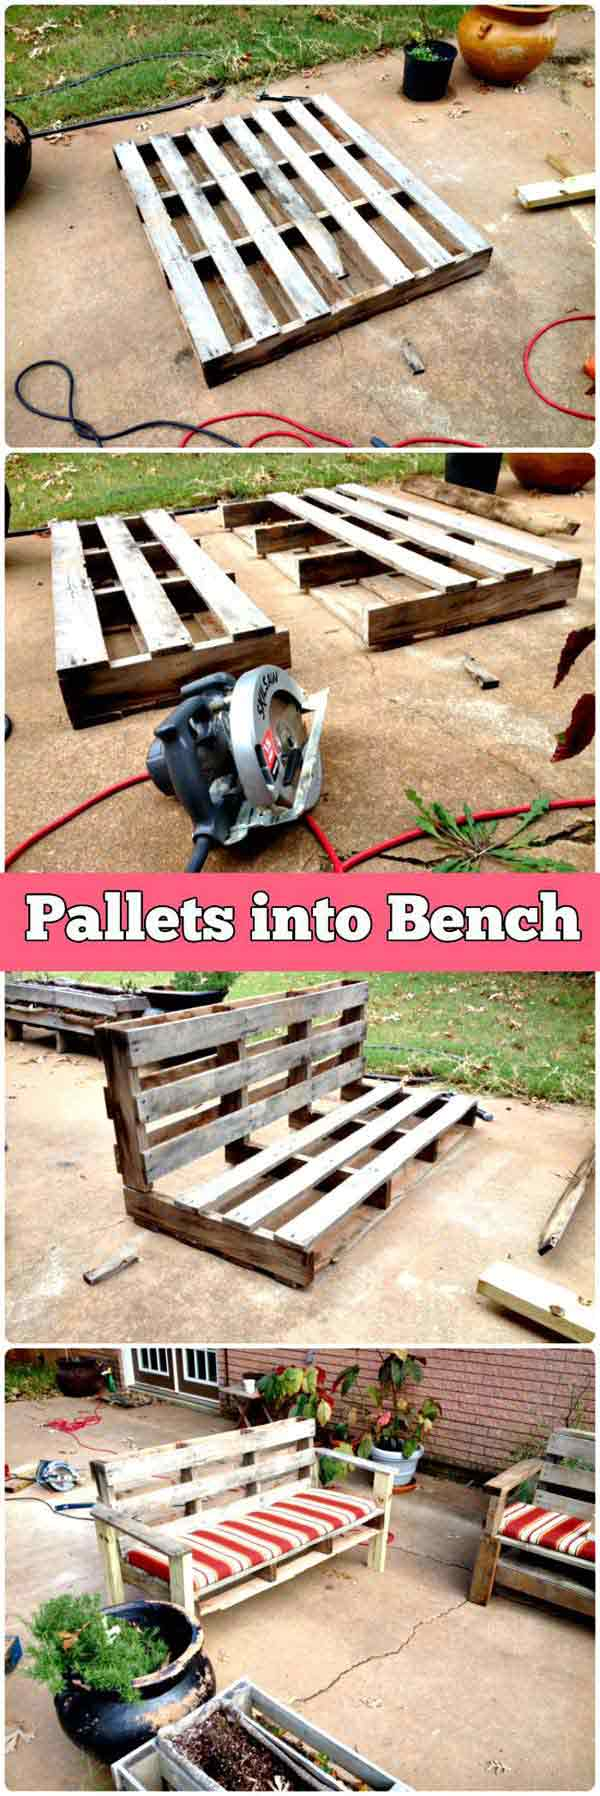 29 superb ways to update the porch and patio amazing diy interior get tutorial at rkblack publicscrutiny Gallery